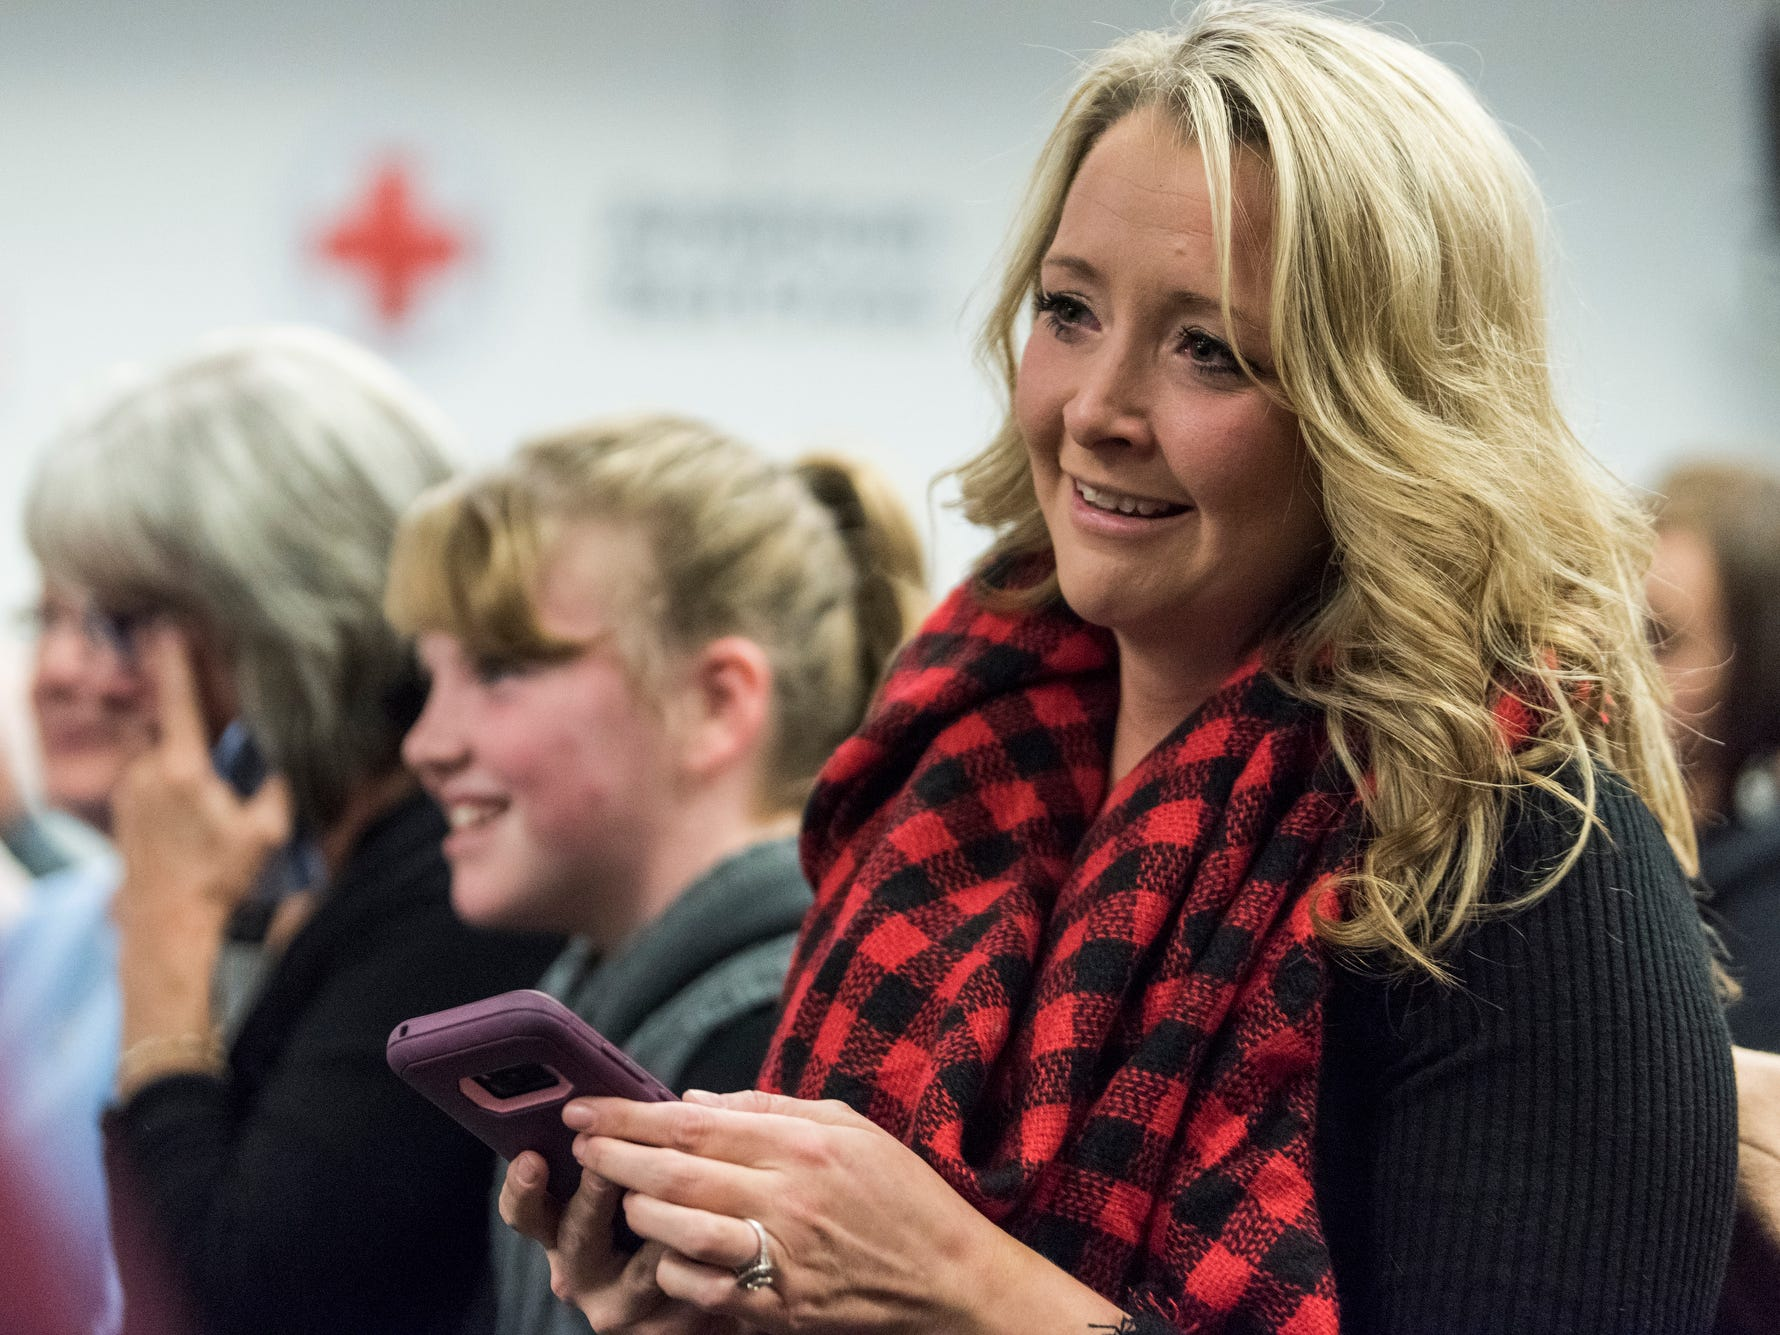 """Jessica Schmitt reacts to her fiancé Ryan Lux being named the Distinguished Recruit of during his Evansville Fire Department graduation ceremony at the American Red Cross Headquarters in Evansville, Ind., Friday, Oct. 12, 2018. """"I am so proud of him. I was overwhelmed with emotion, I immediately started bawling,"""" Schmitt said."""